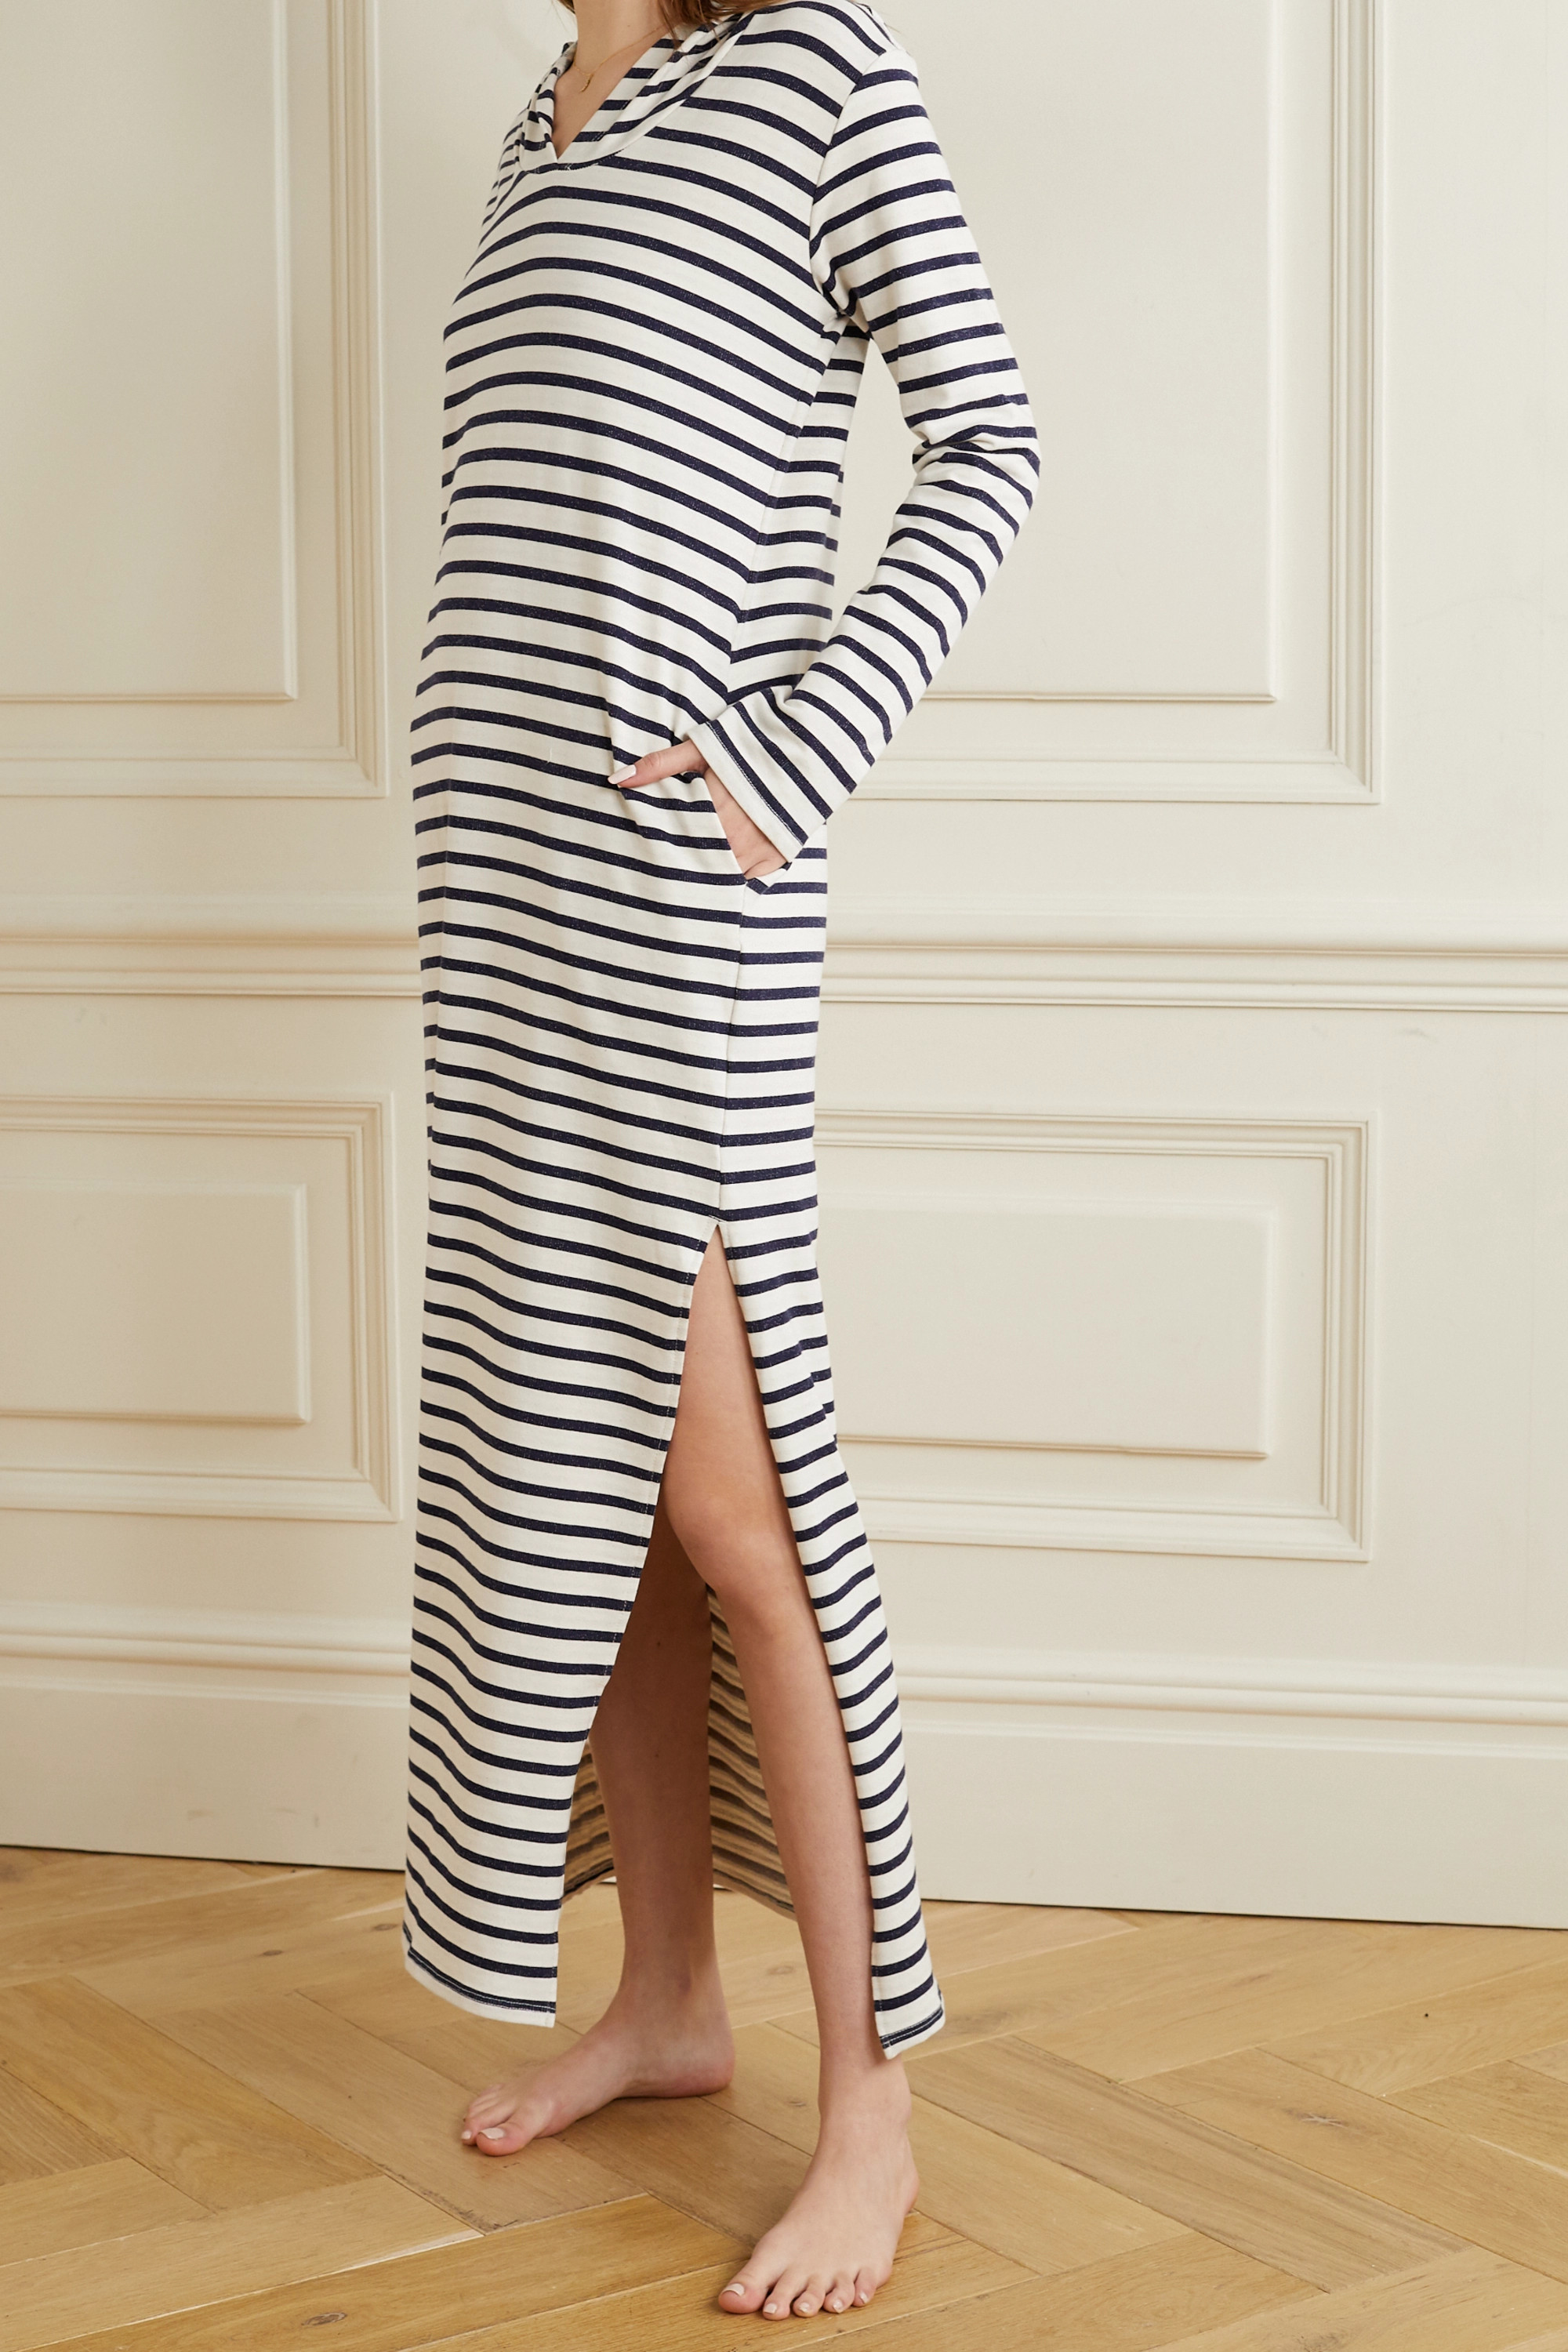 Pour Les Femmes Hooded striped cotton-blend jersey nightdress